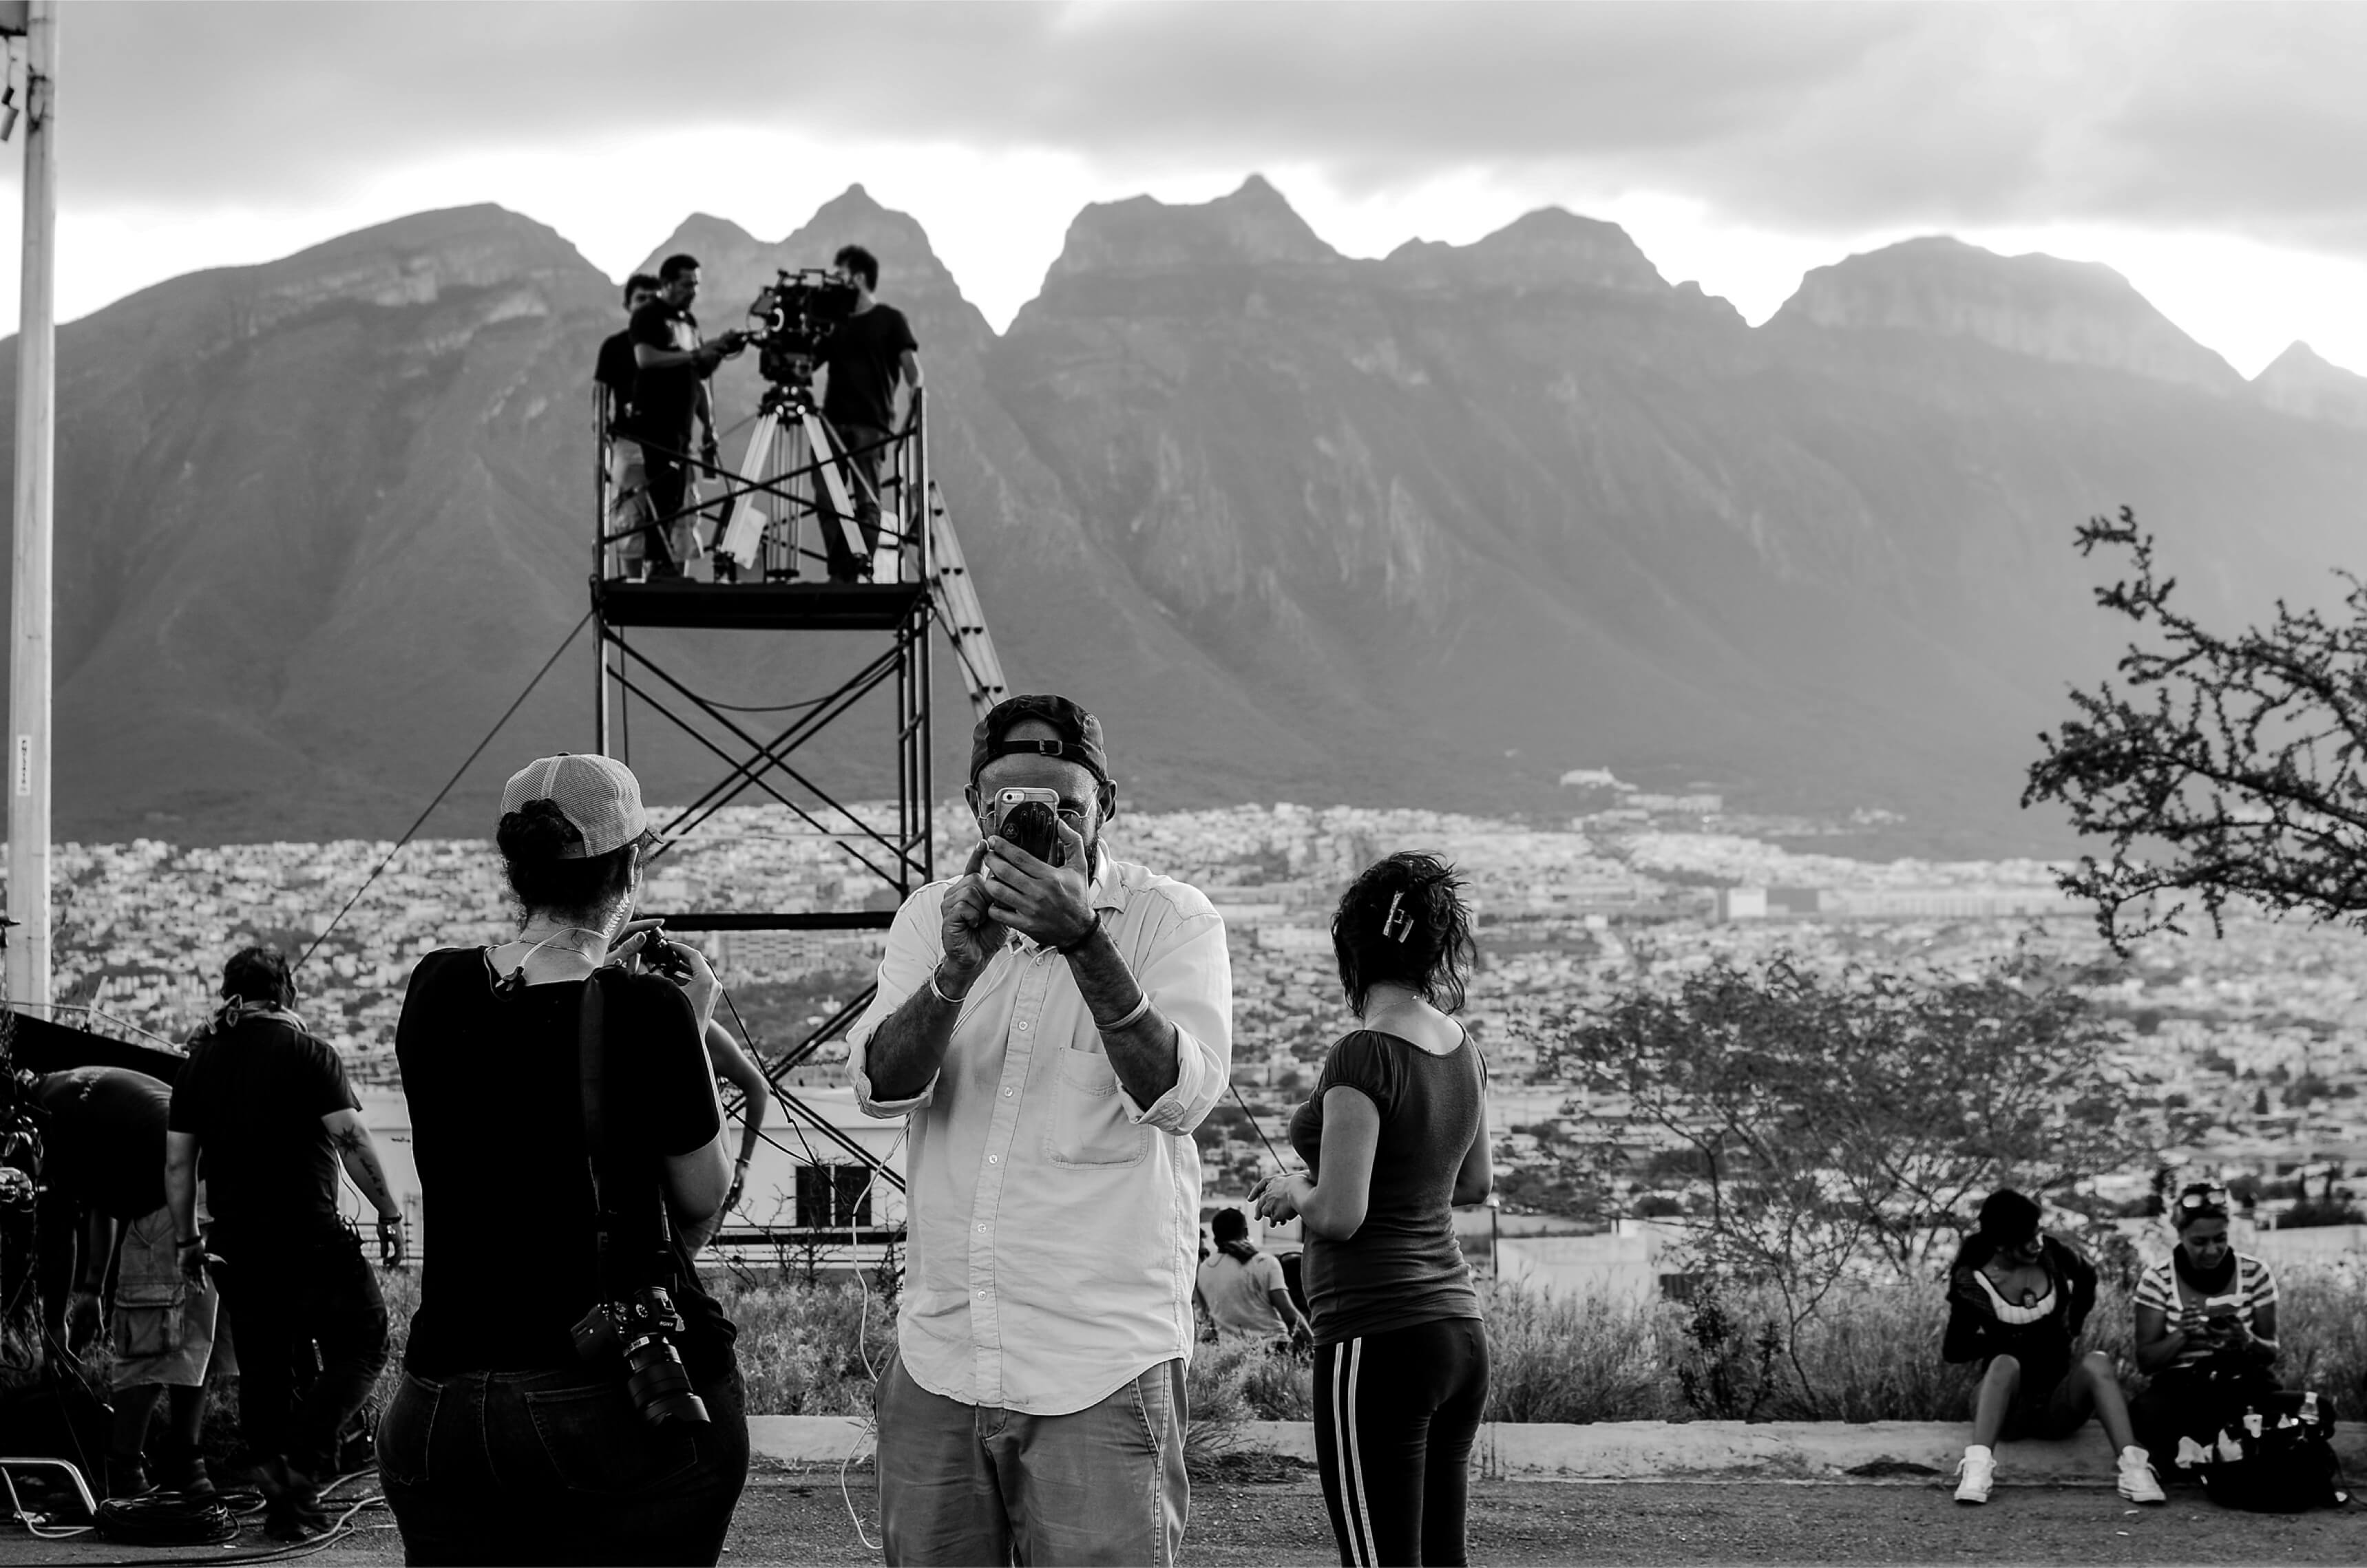 Frías de la Parra holds his camera up to his eye. Behind him, his crew prepares for a scene set against the striking mountains of Monterrey.